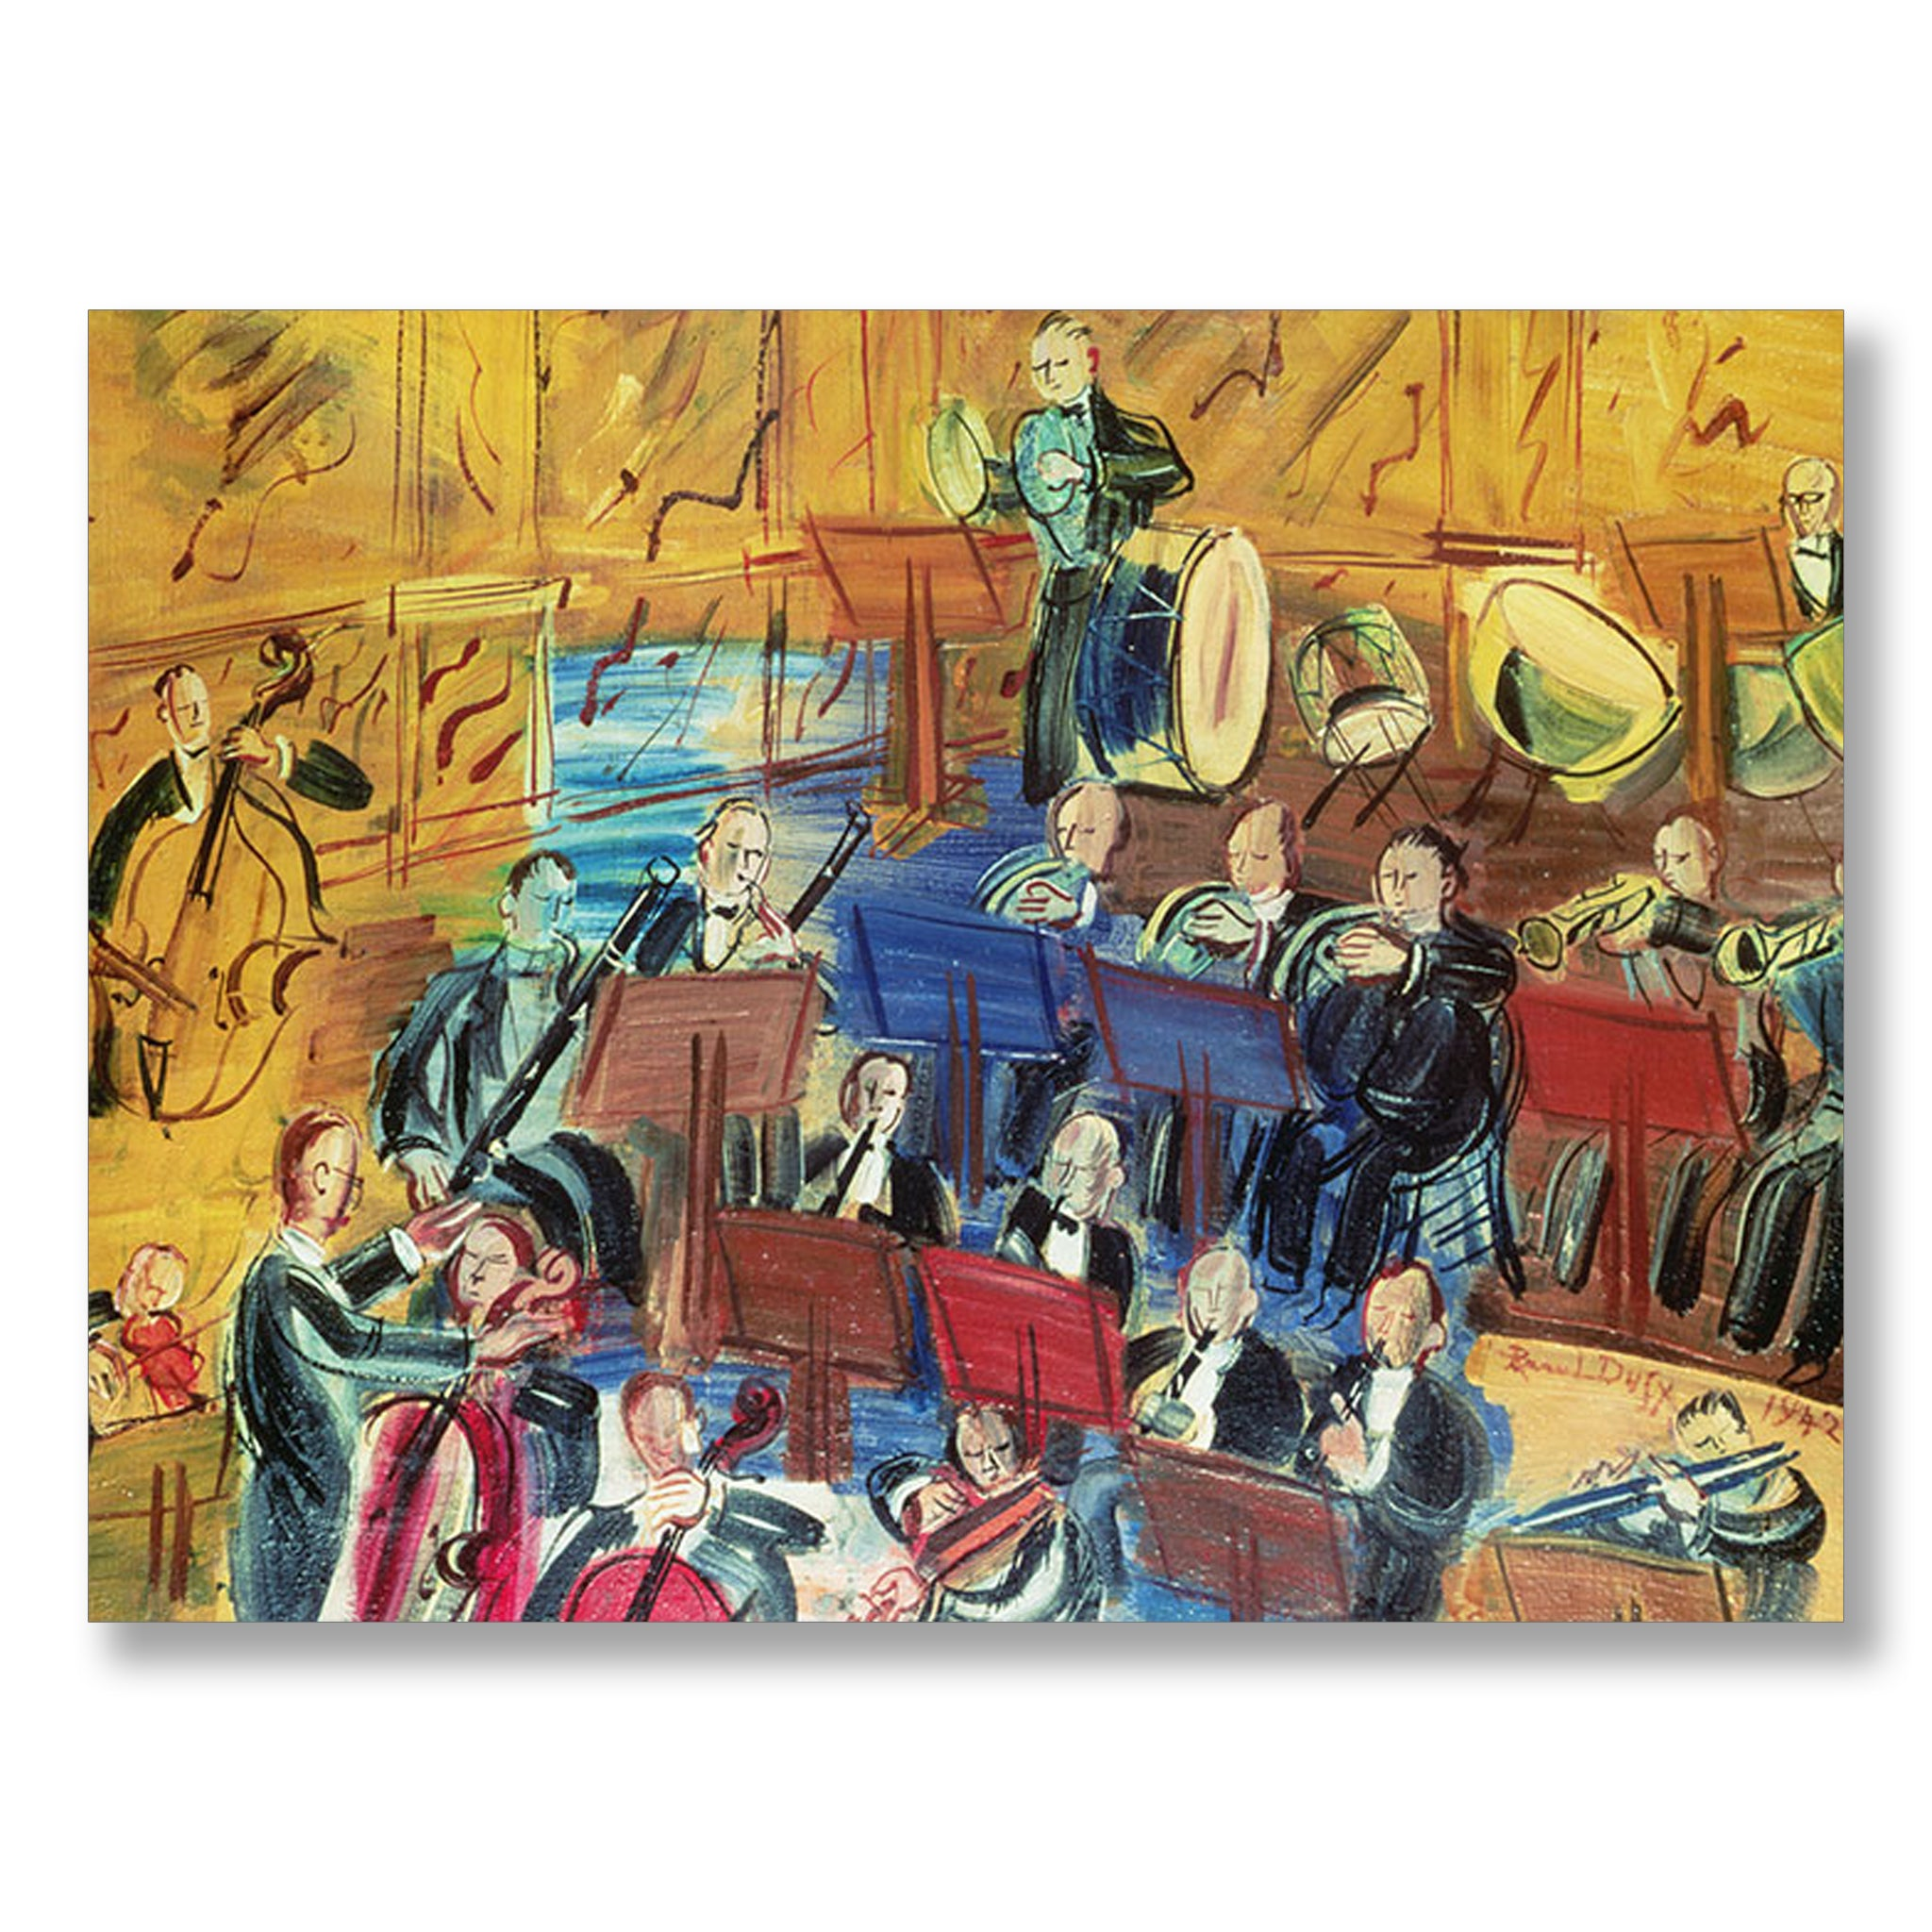 Orchestra by Raoul Dufy